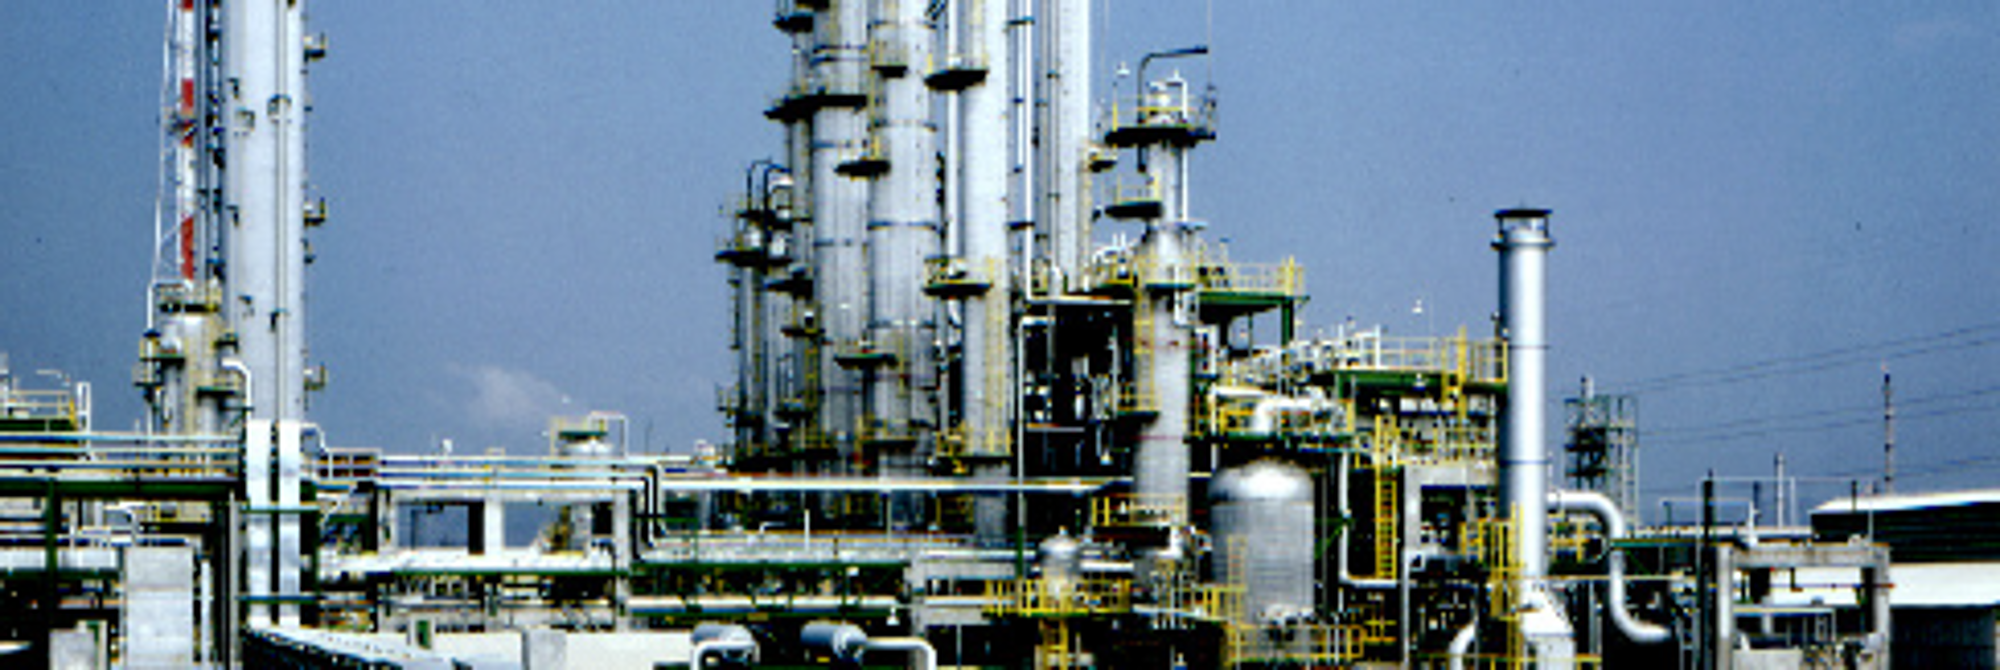 Olefins and Solvents